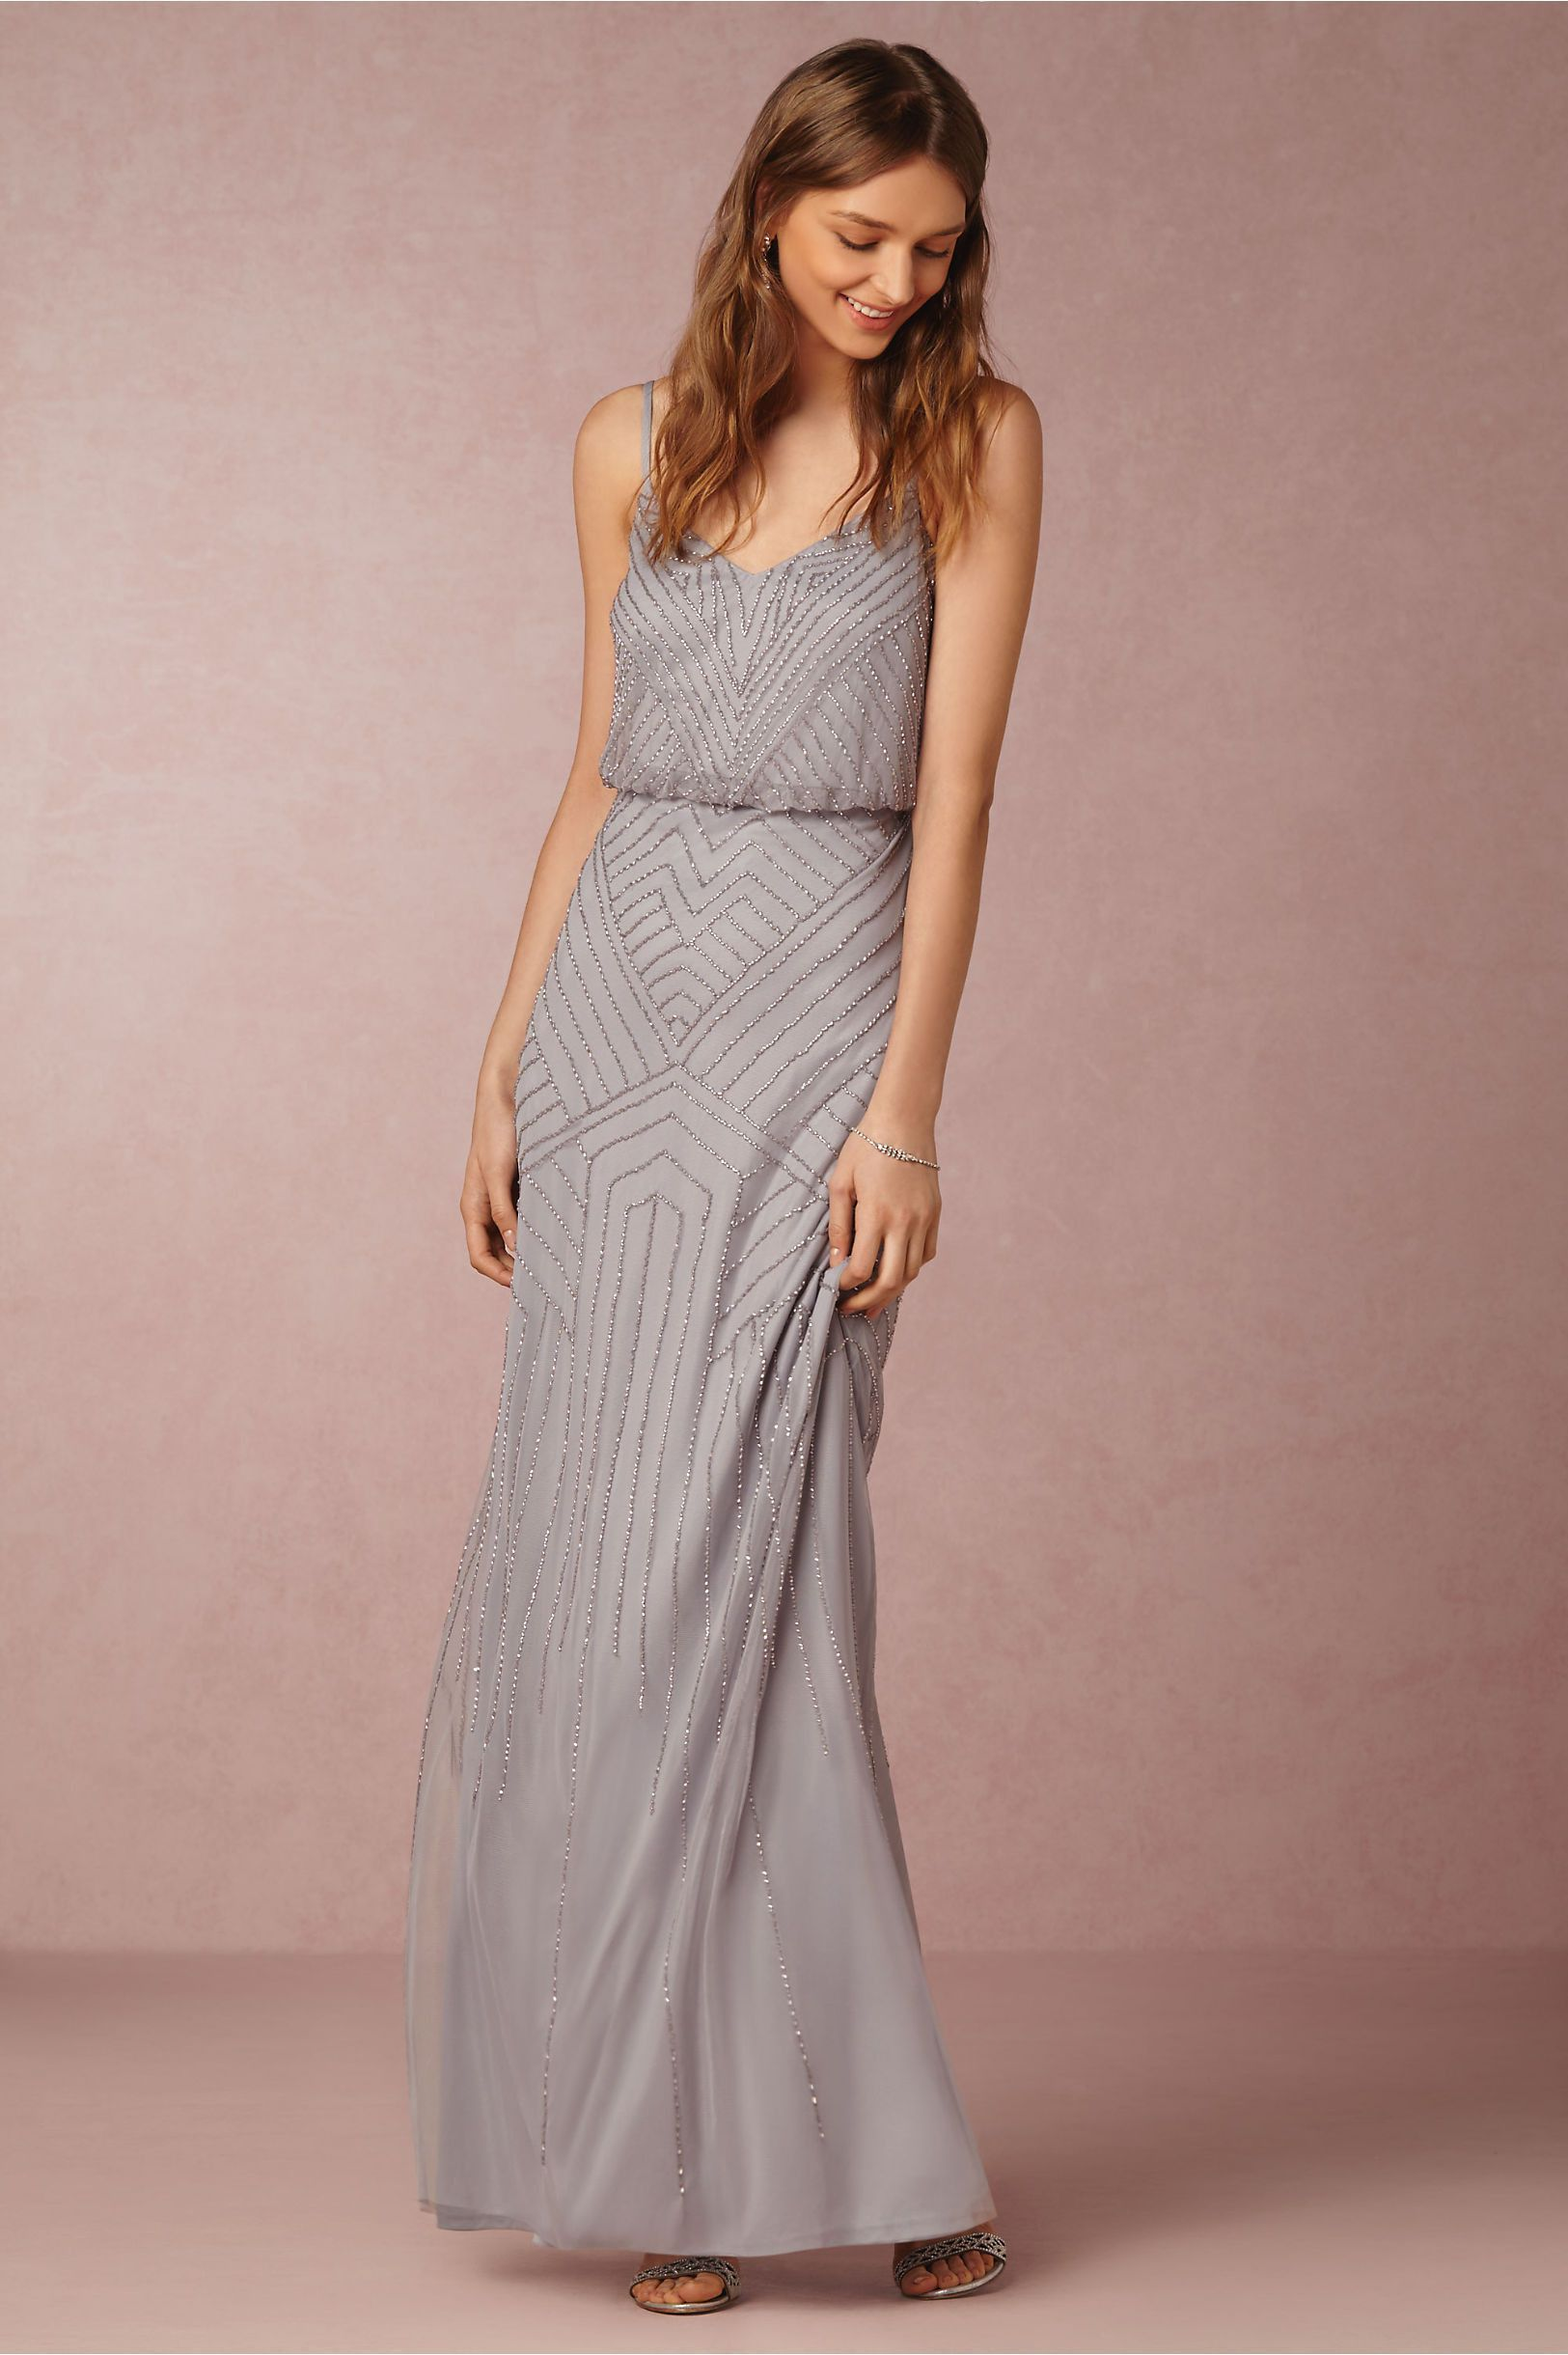 7a02f6891e9 BHLDN Adrianna Papell Sophia Gown - Silver Gray in 2019